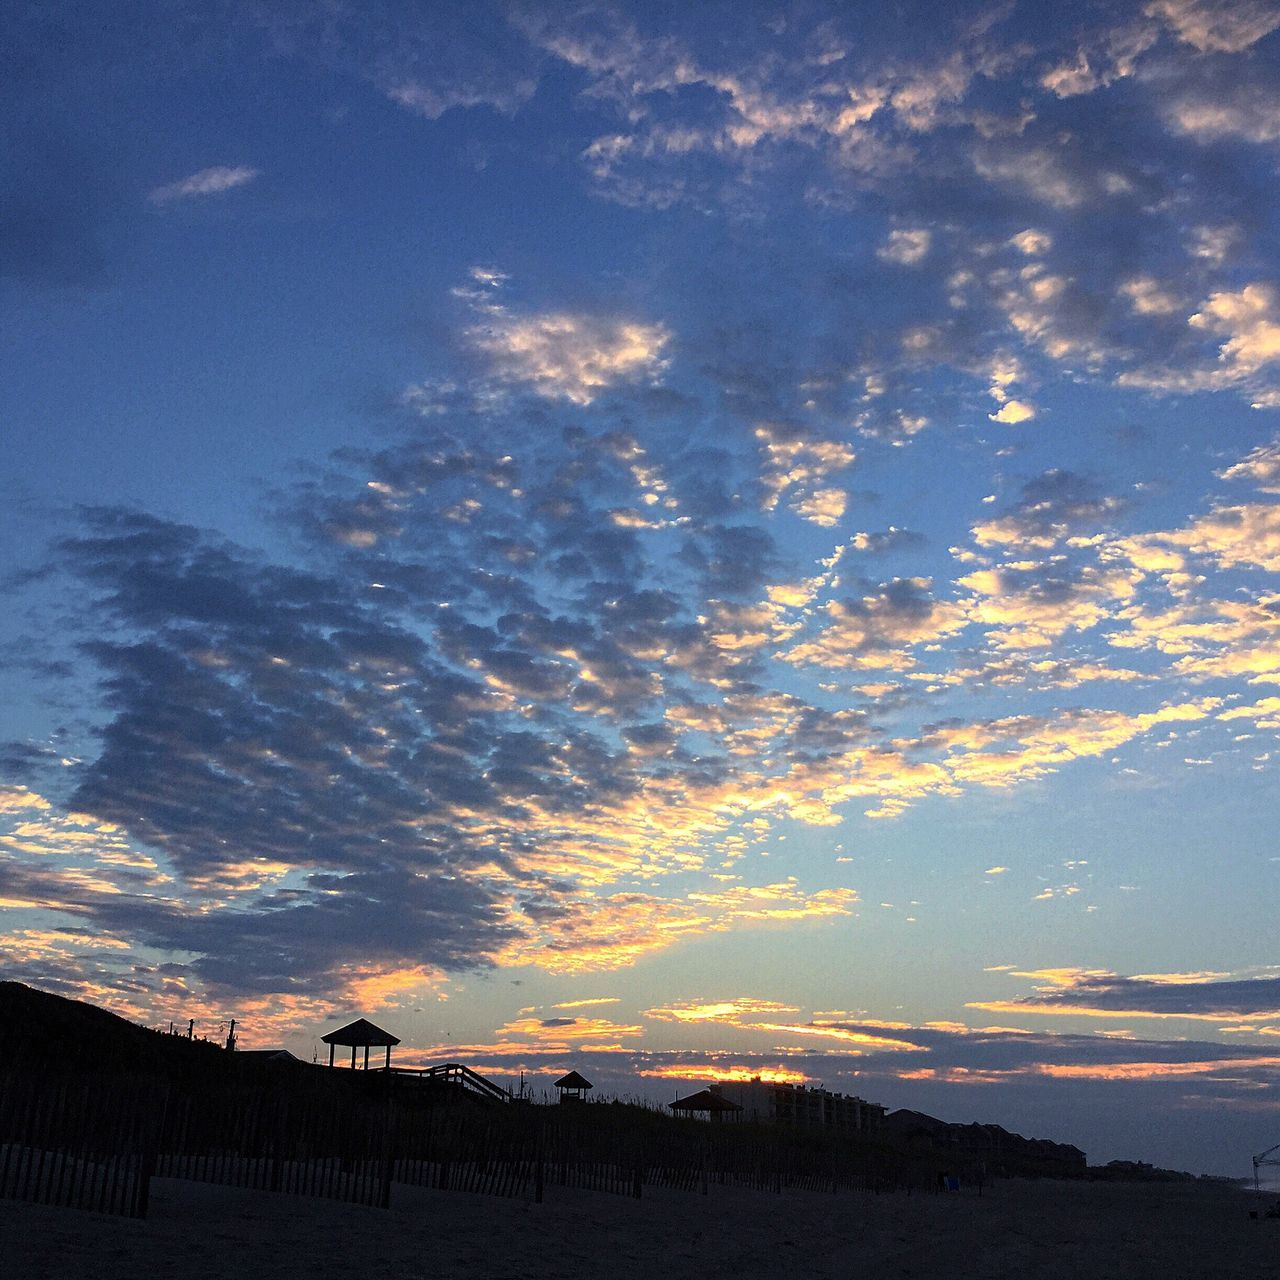 Low Angle View Of Beach Against Sky During Sunset